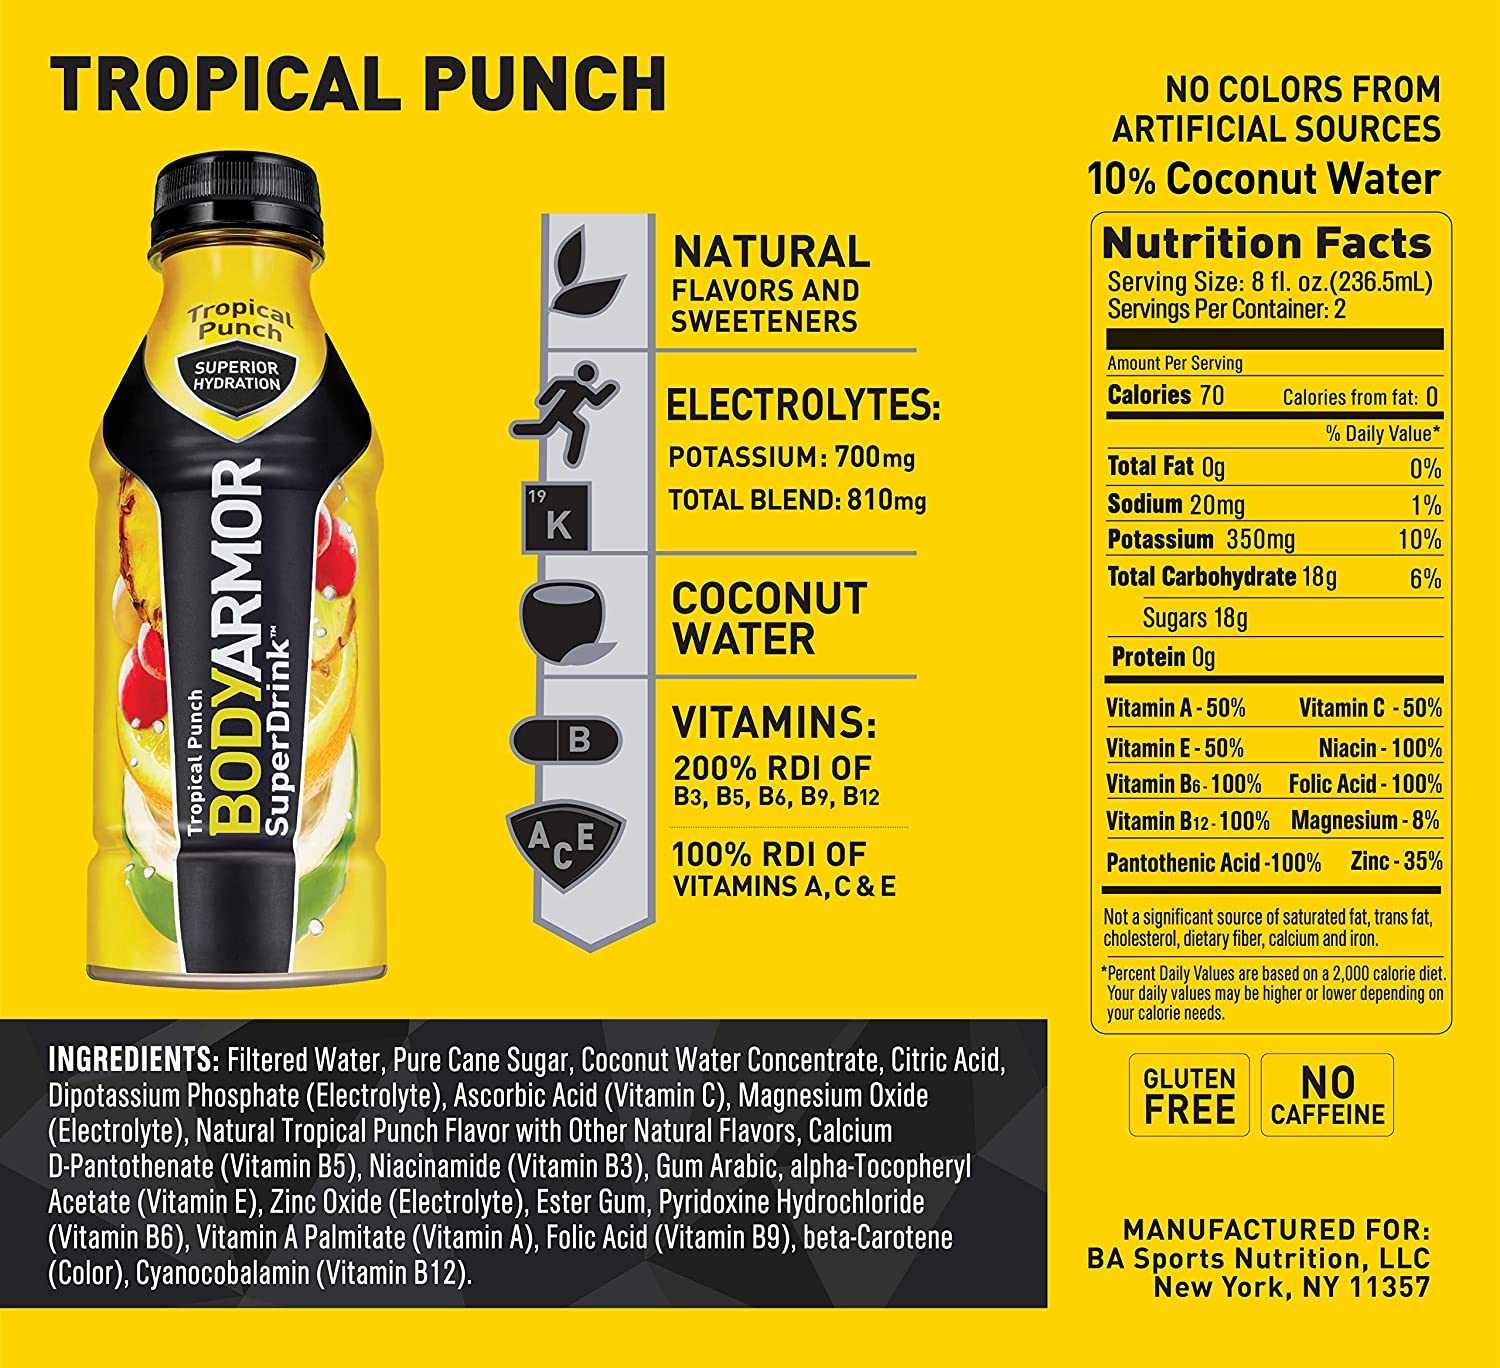 BODYARMOR Sports Drink Sports Beverage, Tropical Punch, Natural Flavor With  Vitamins,